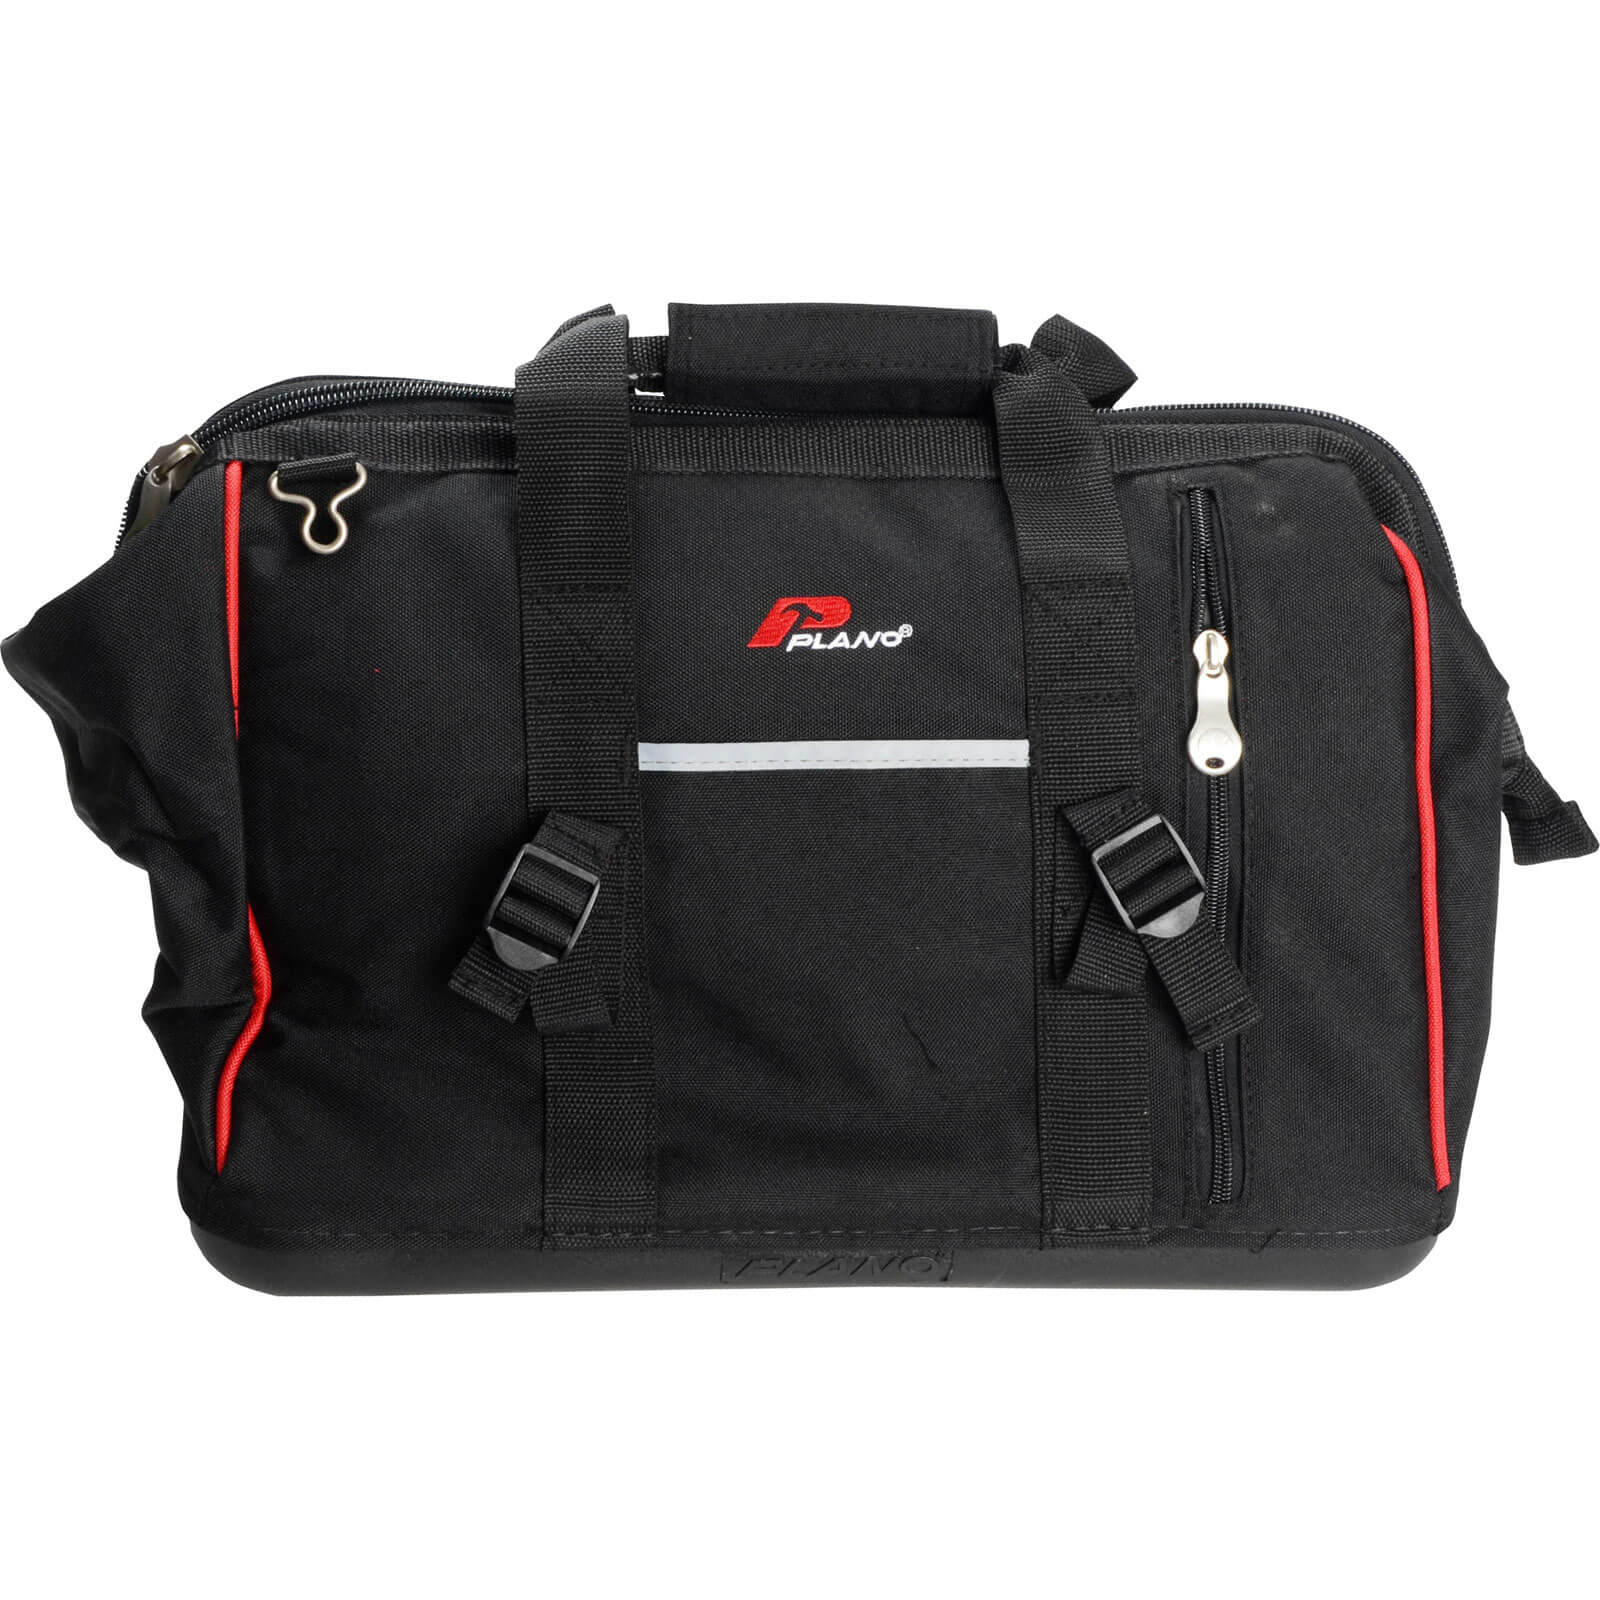 Image of Plano Hard Base Tool Bag